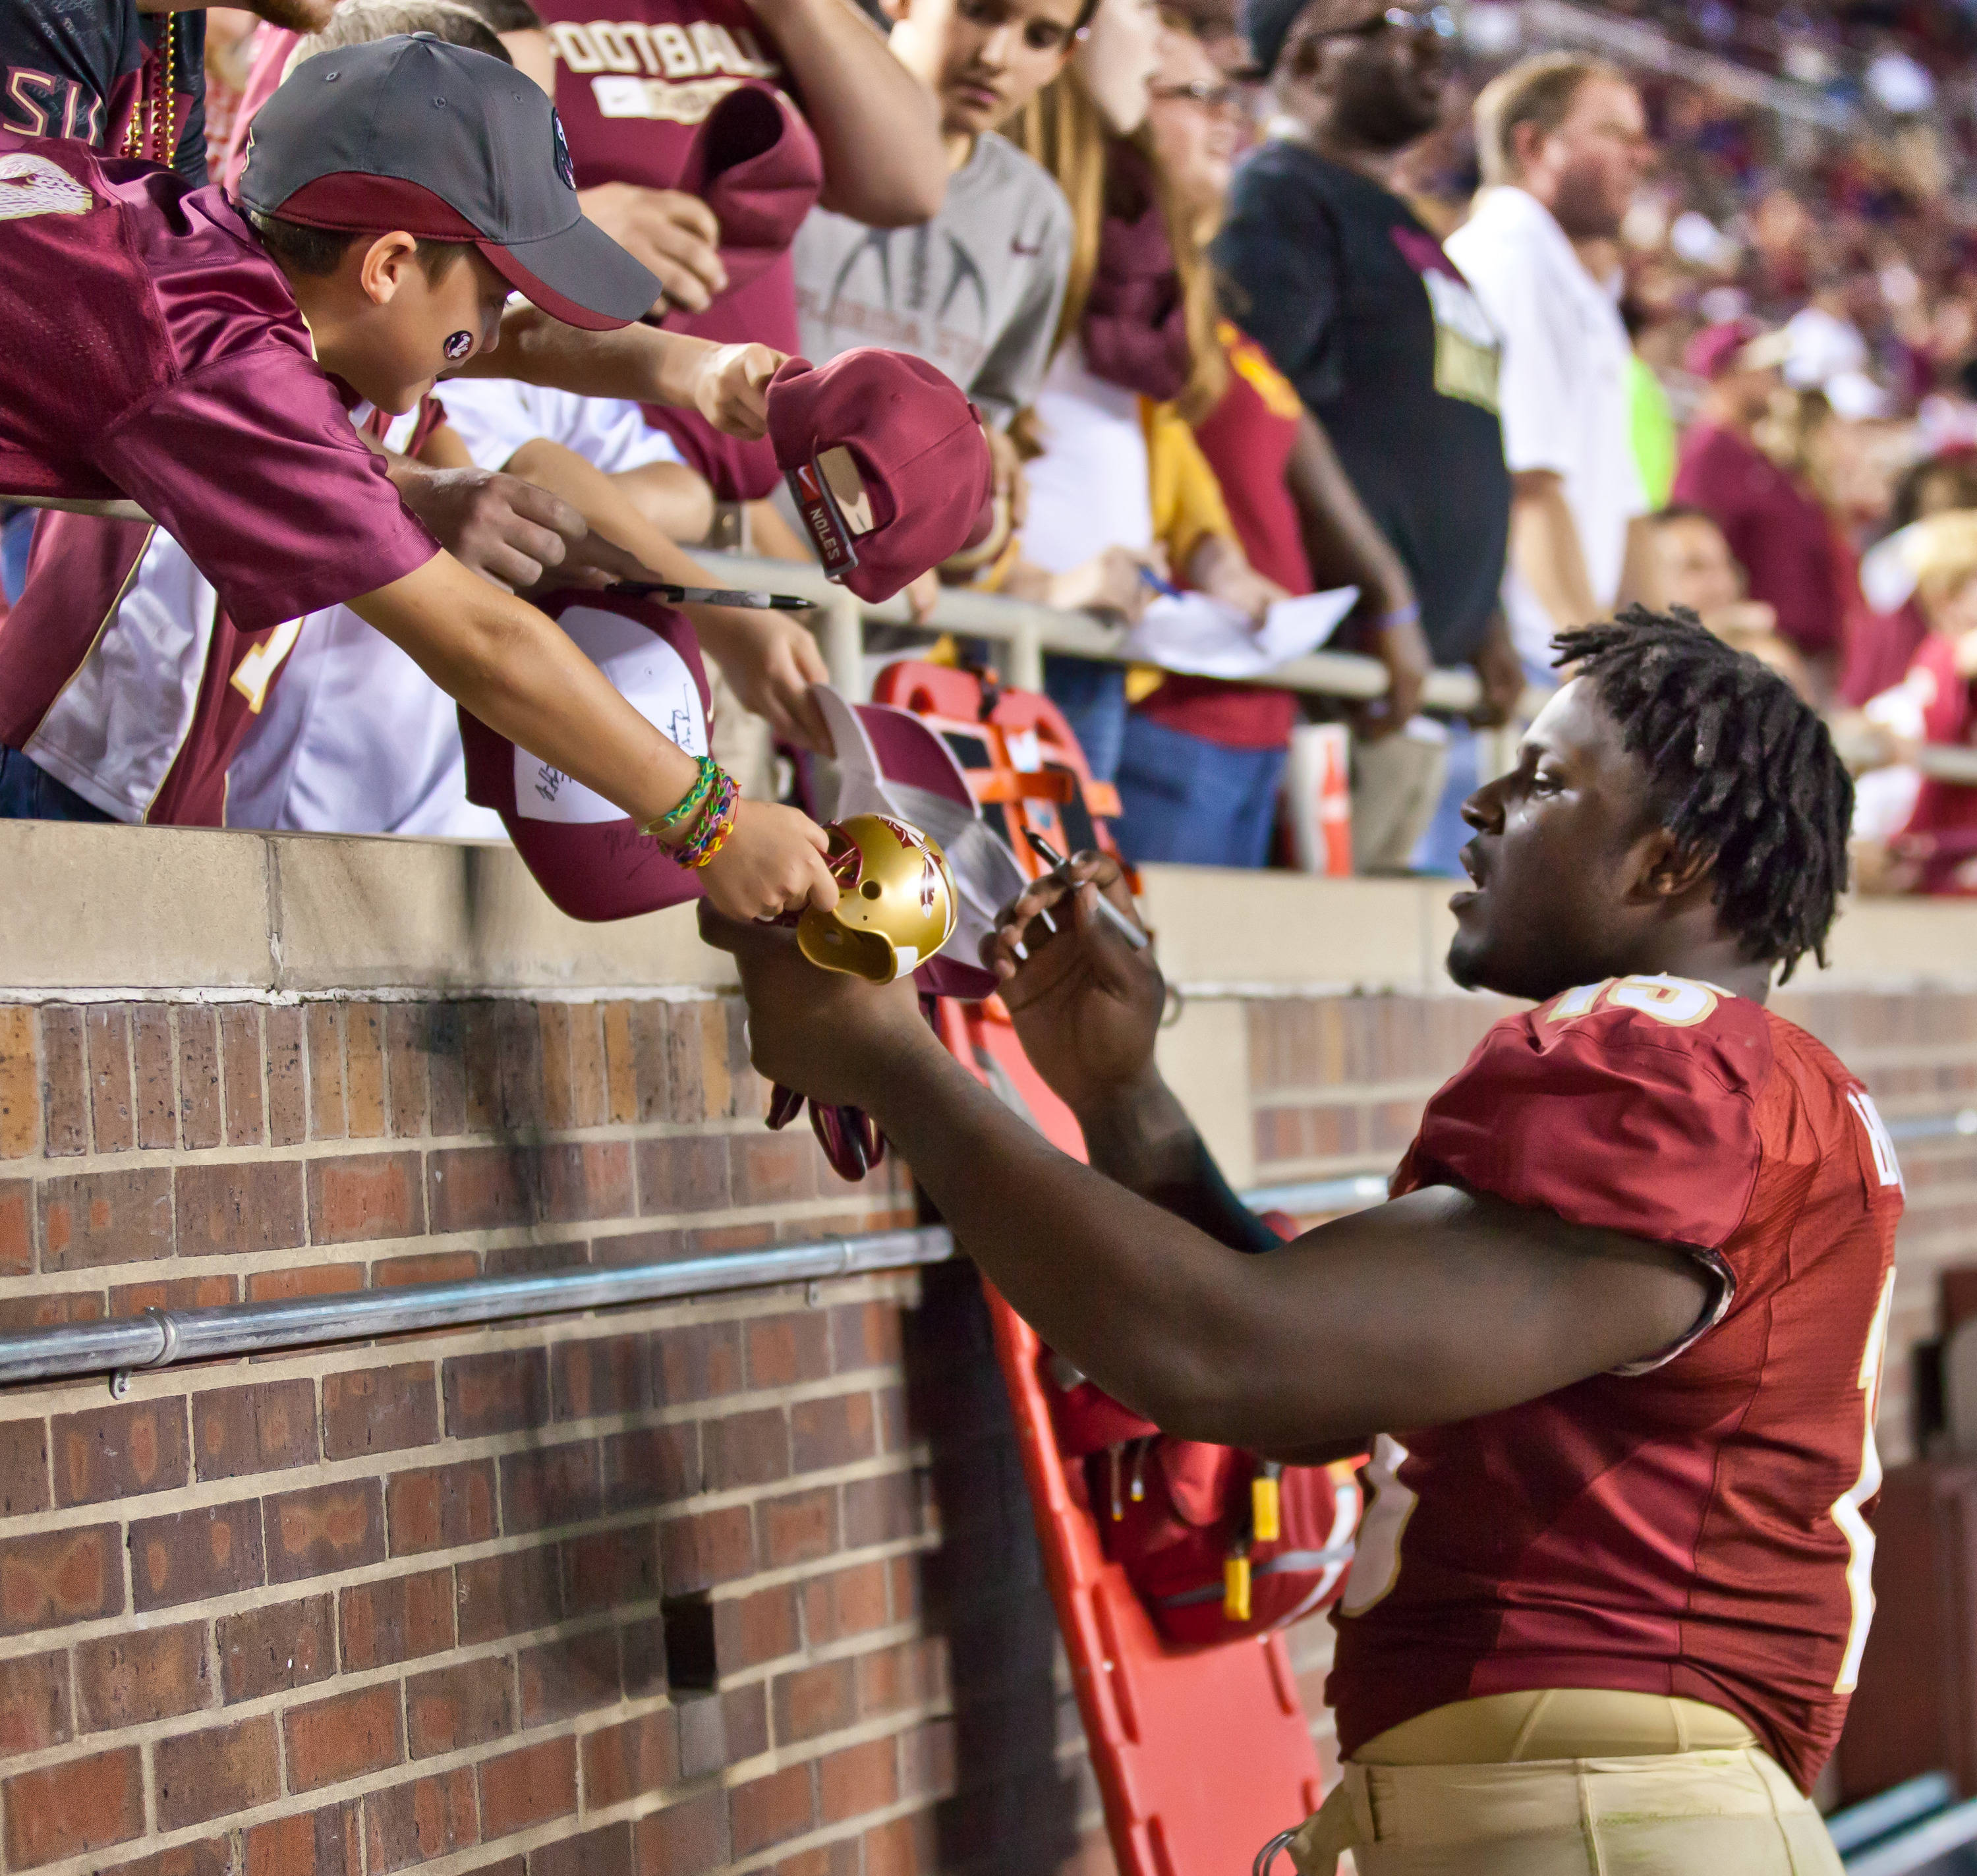 Jr. Edwards Mario (15) signs autographs for young fans.